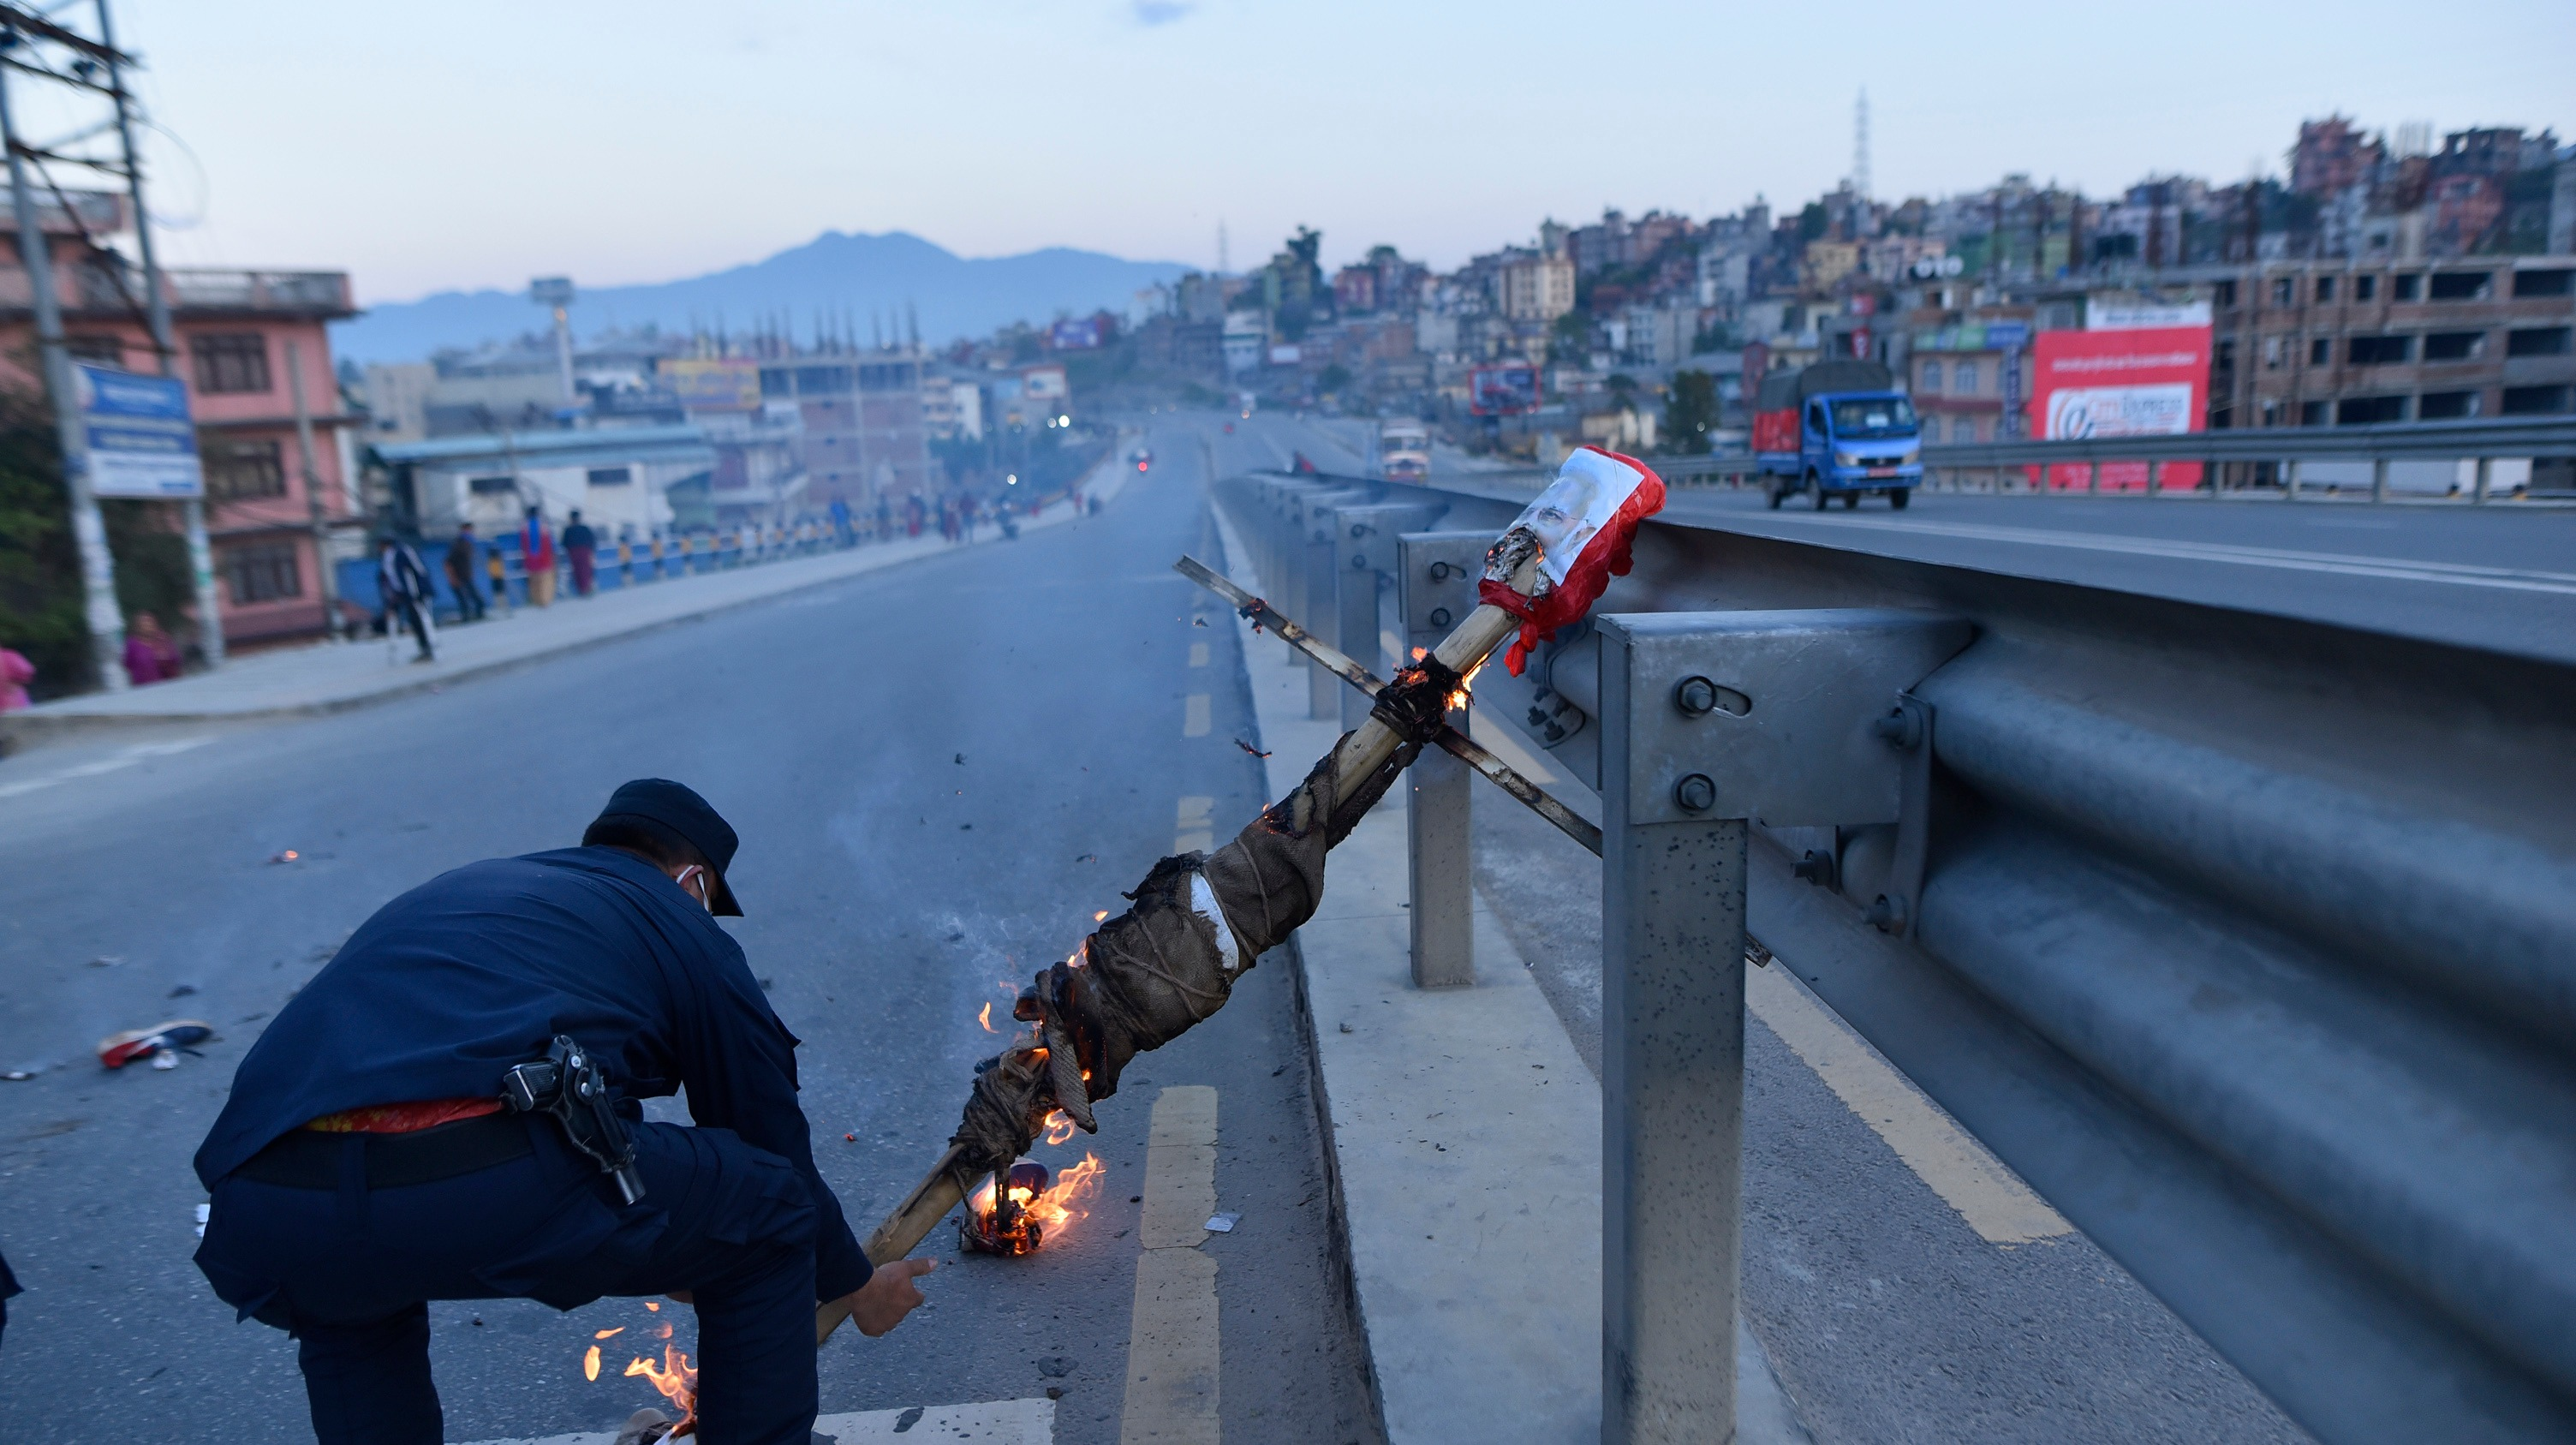 After China border issue, new India row with Nepal flares up over road to Tibet